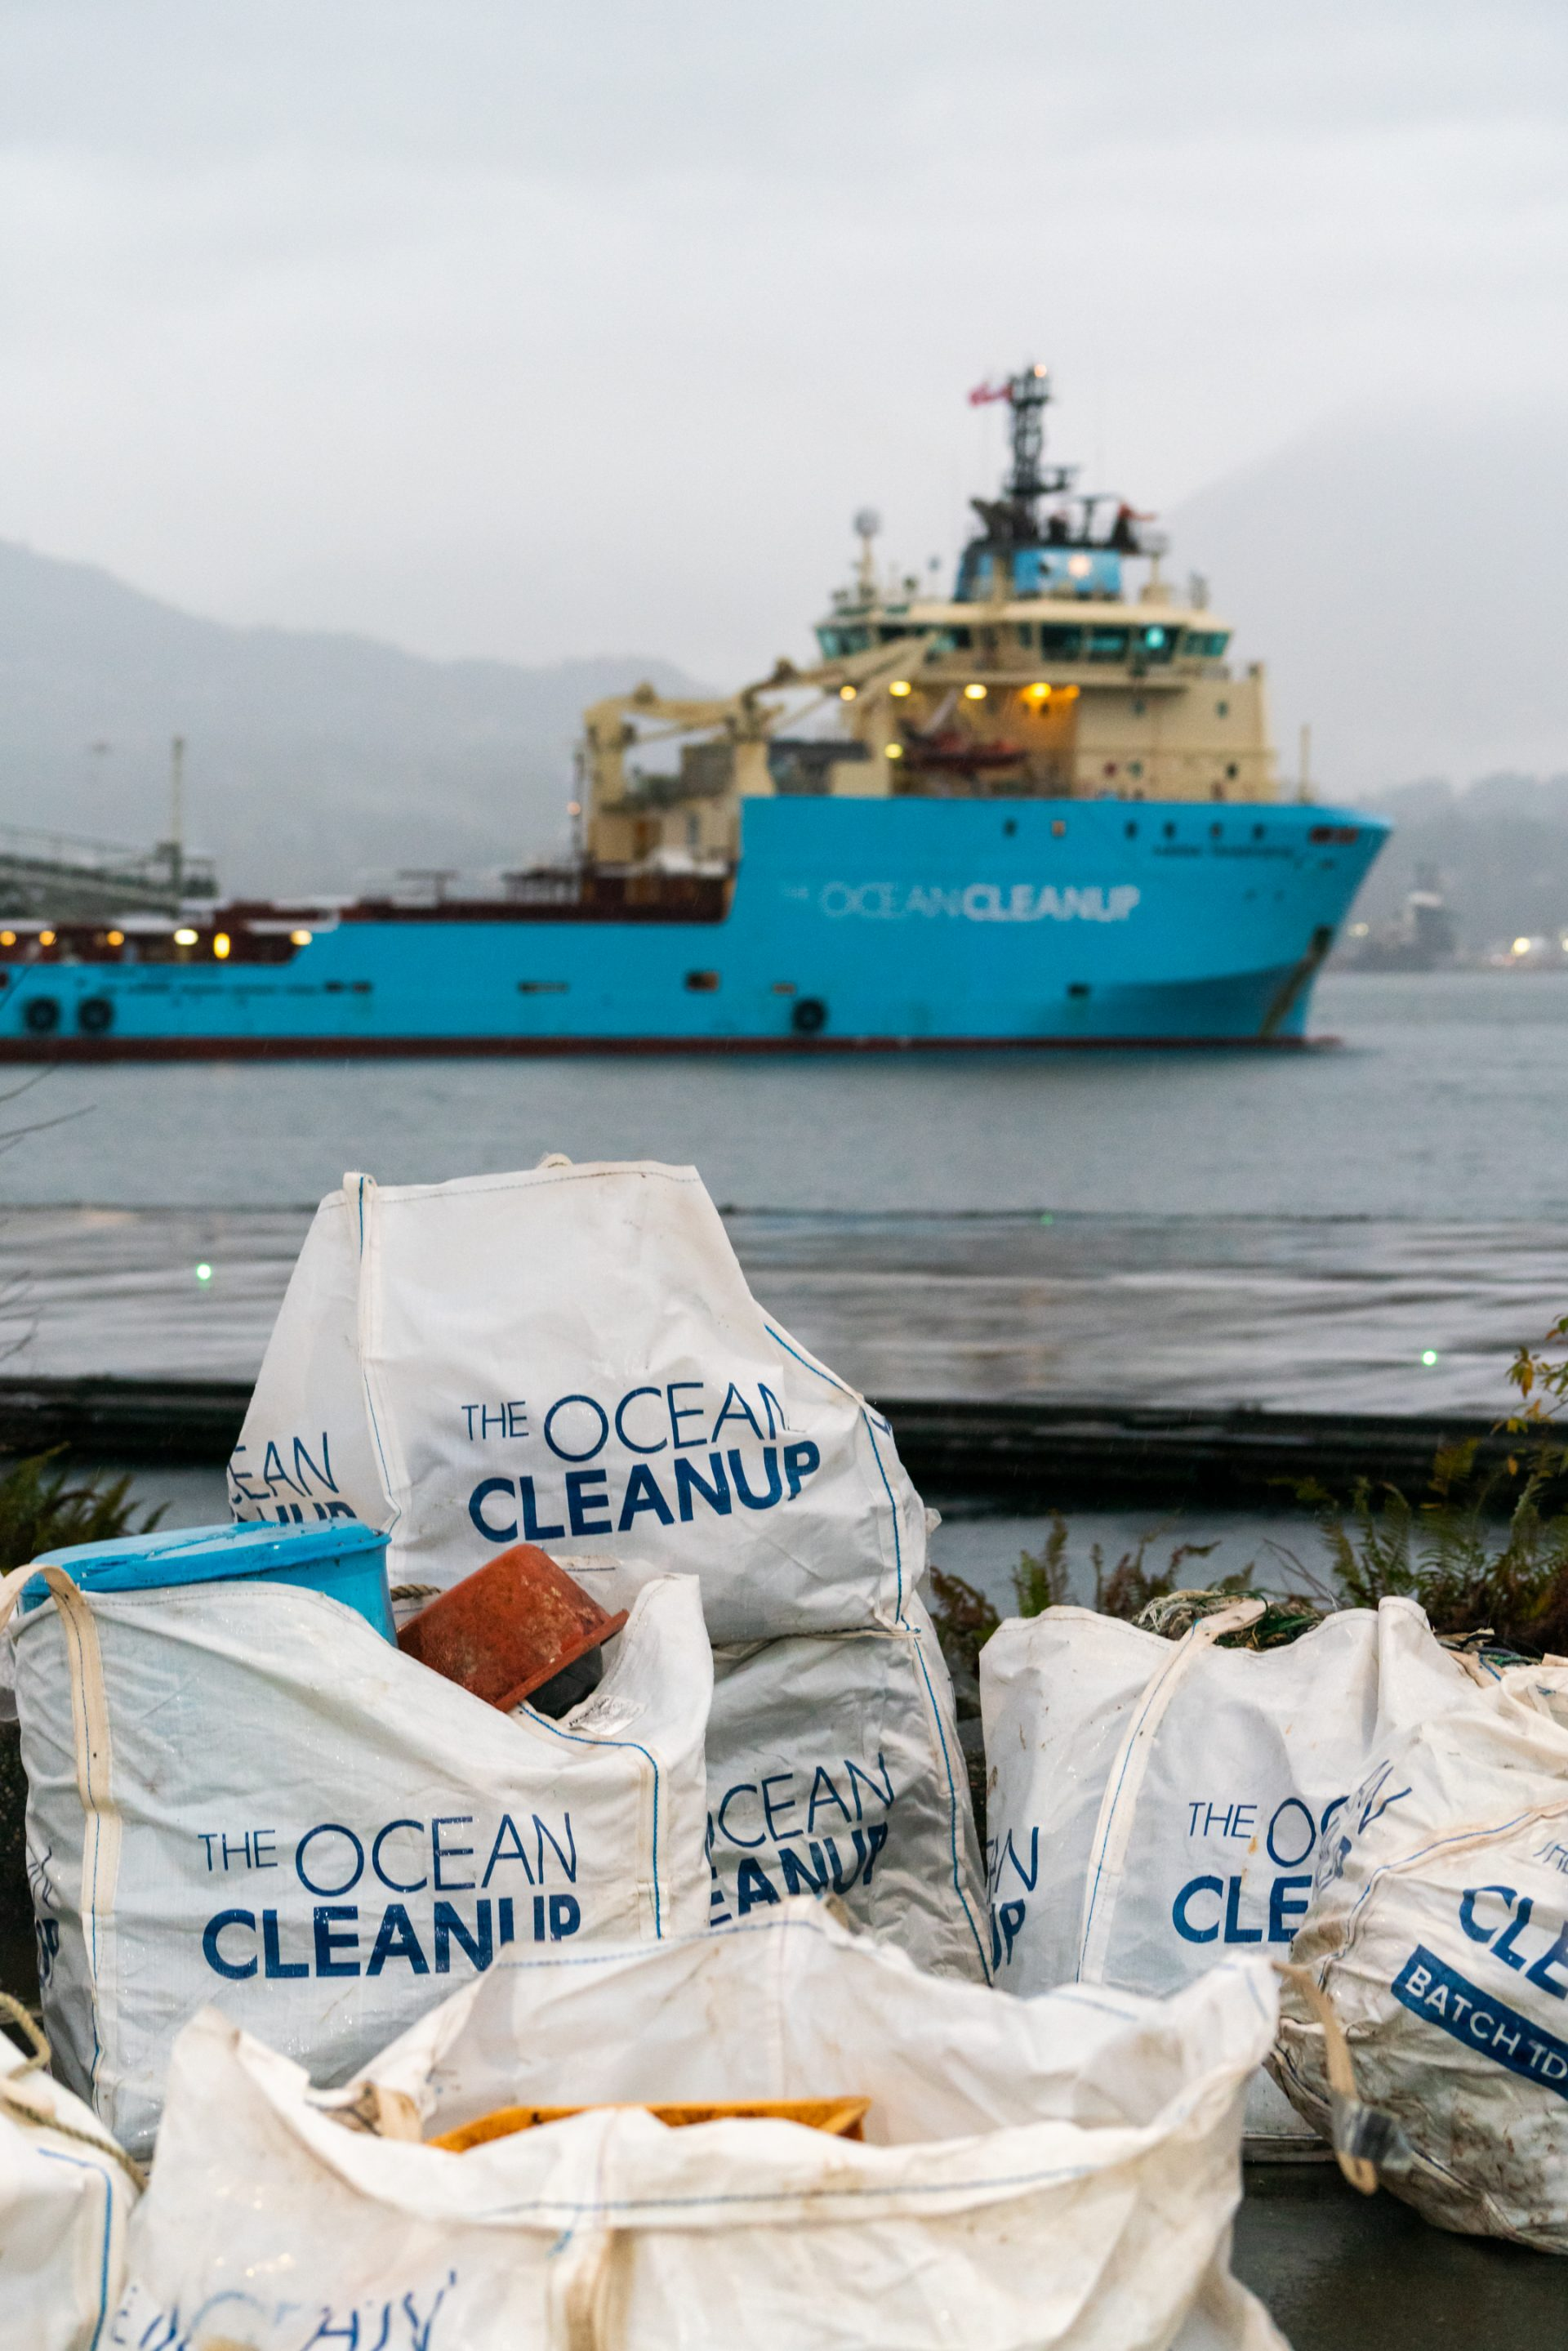 Image Courtesy: The Ocean Cleanup